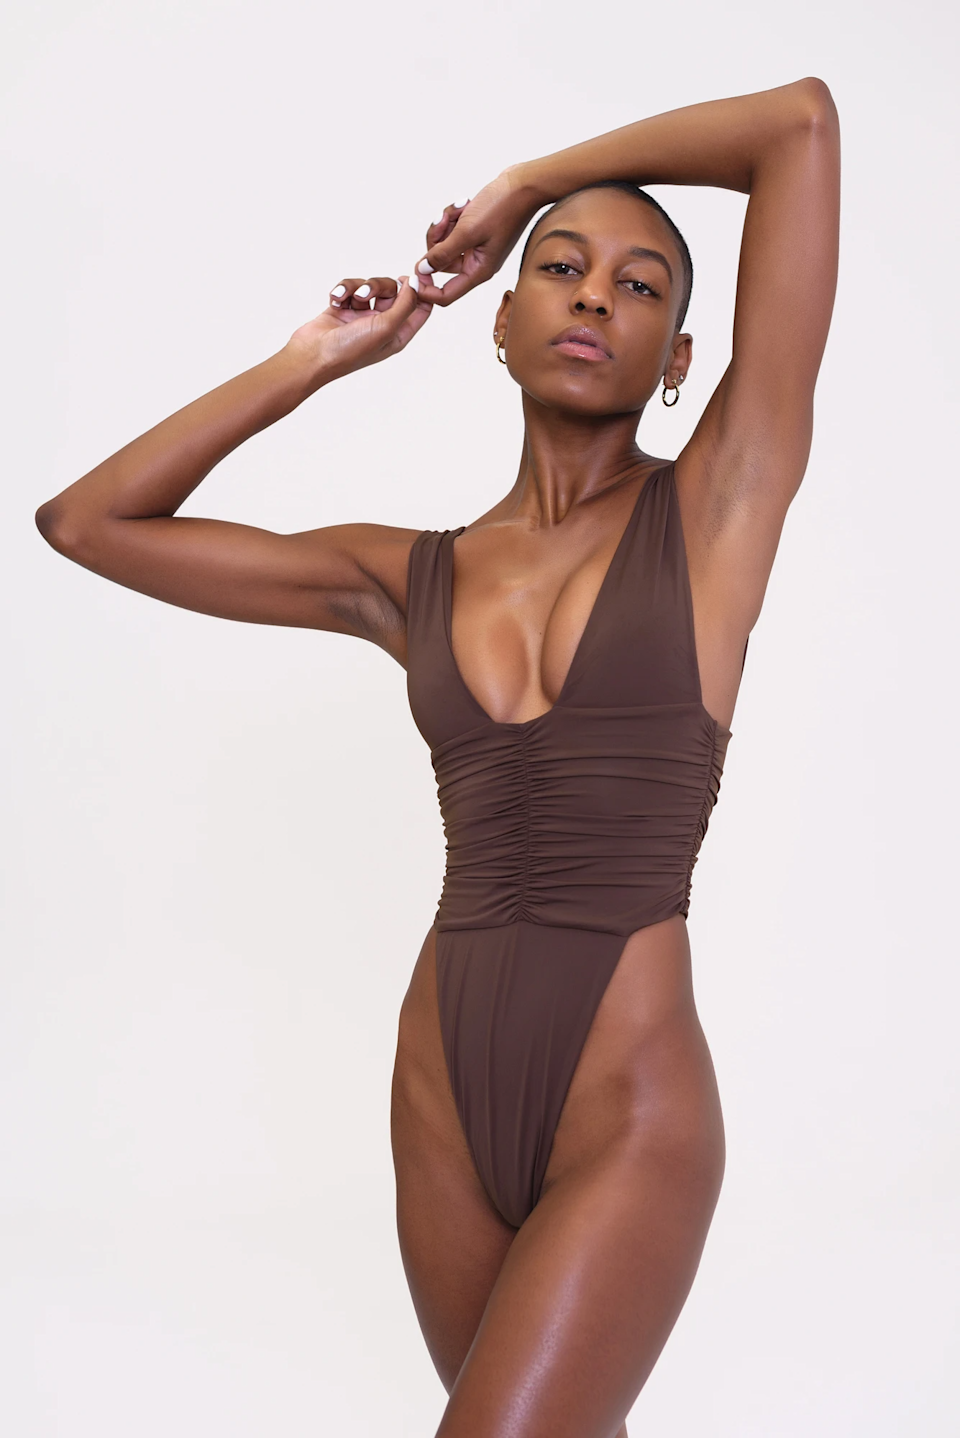 """<br><br><strong>RIOT SWIM</strong> Echo One Piece-Chocolate, $, available at <a href=""""https://go.skimresources.com/?id=30283X879131&url=https%3A%2F%2Fwww.riotswim.com%2Fproducts%2Fecho-one-piece-chocolate"""" rel=""""nofollow noopener"""" target=""""_blank"""" data-ylk=""""slk:RIOT SWIM"""" class=""""link rapid-noclick-resp"""">RIOT SWIM</a>"""